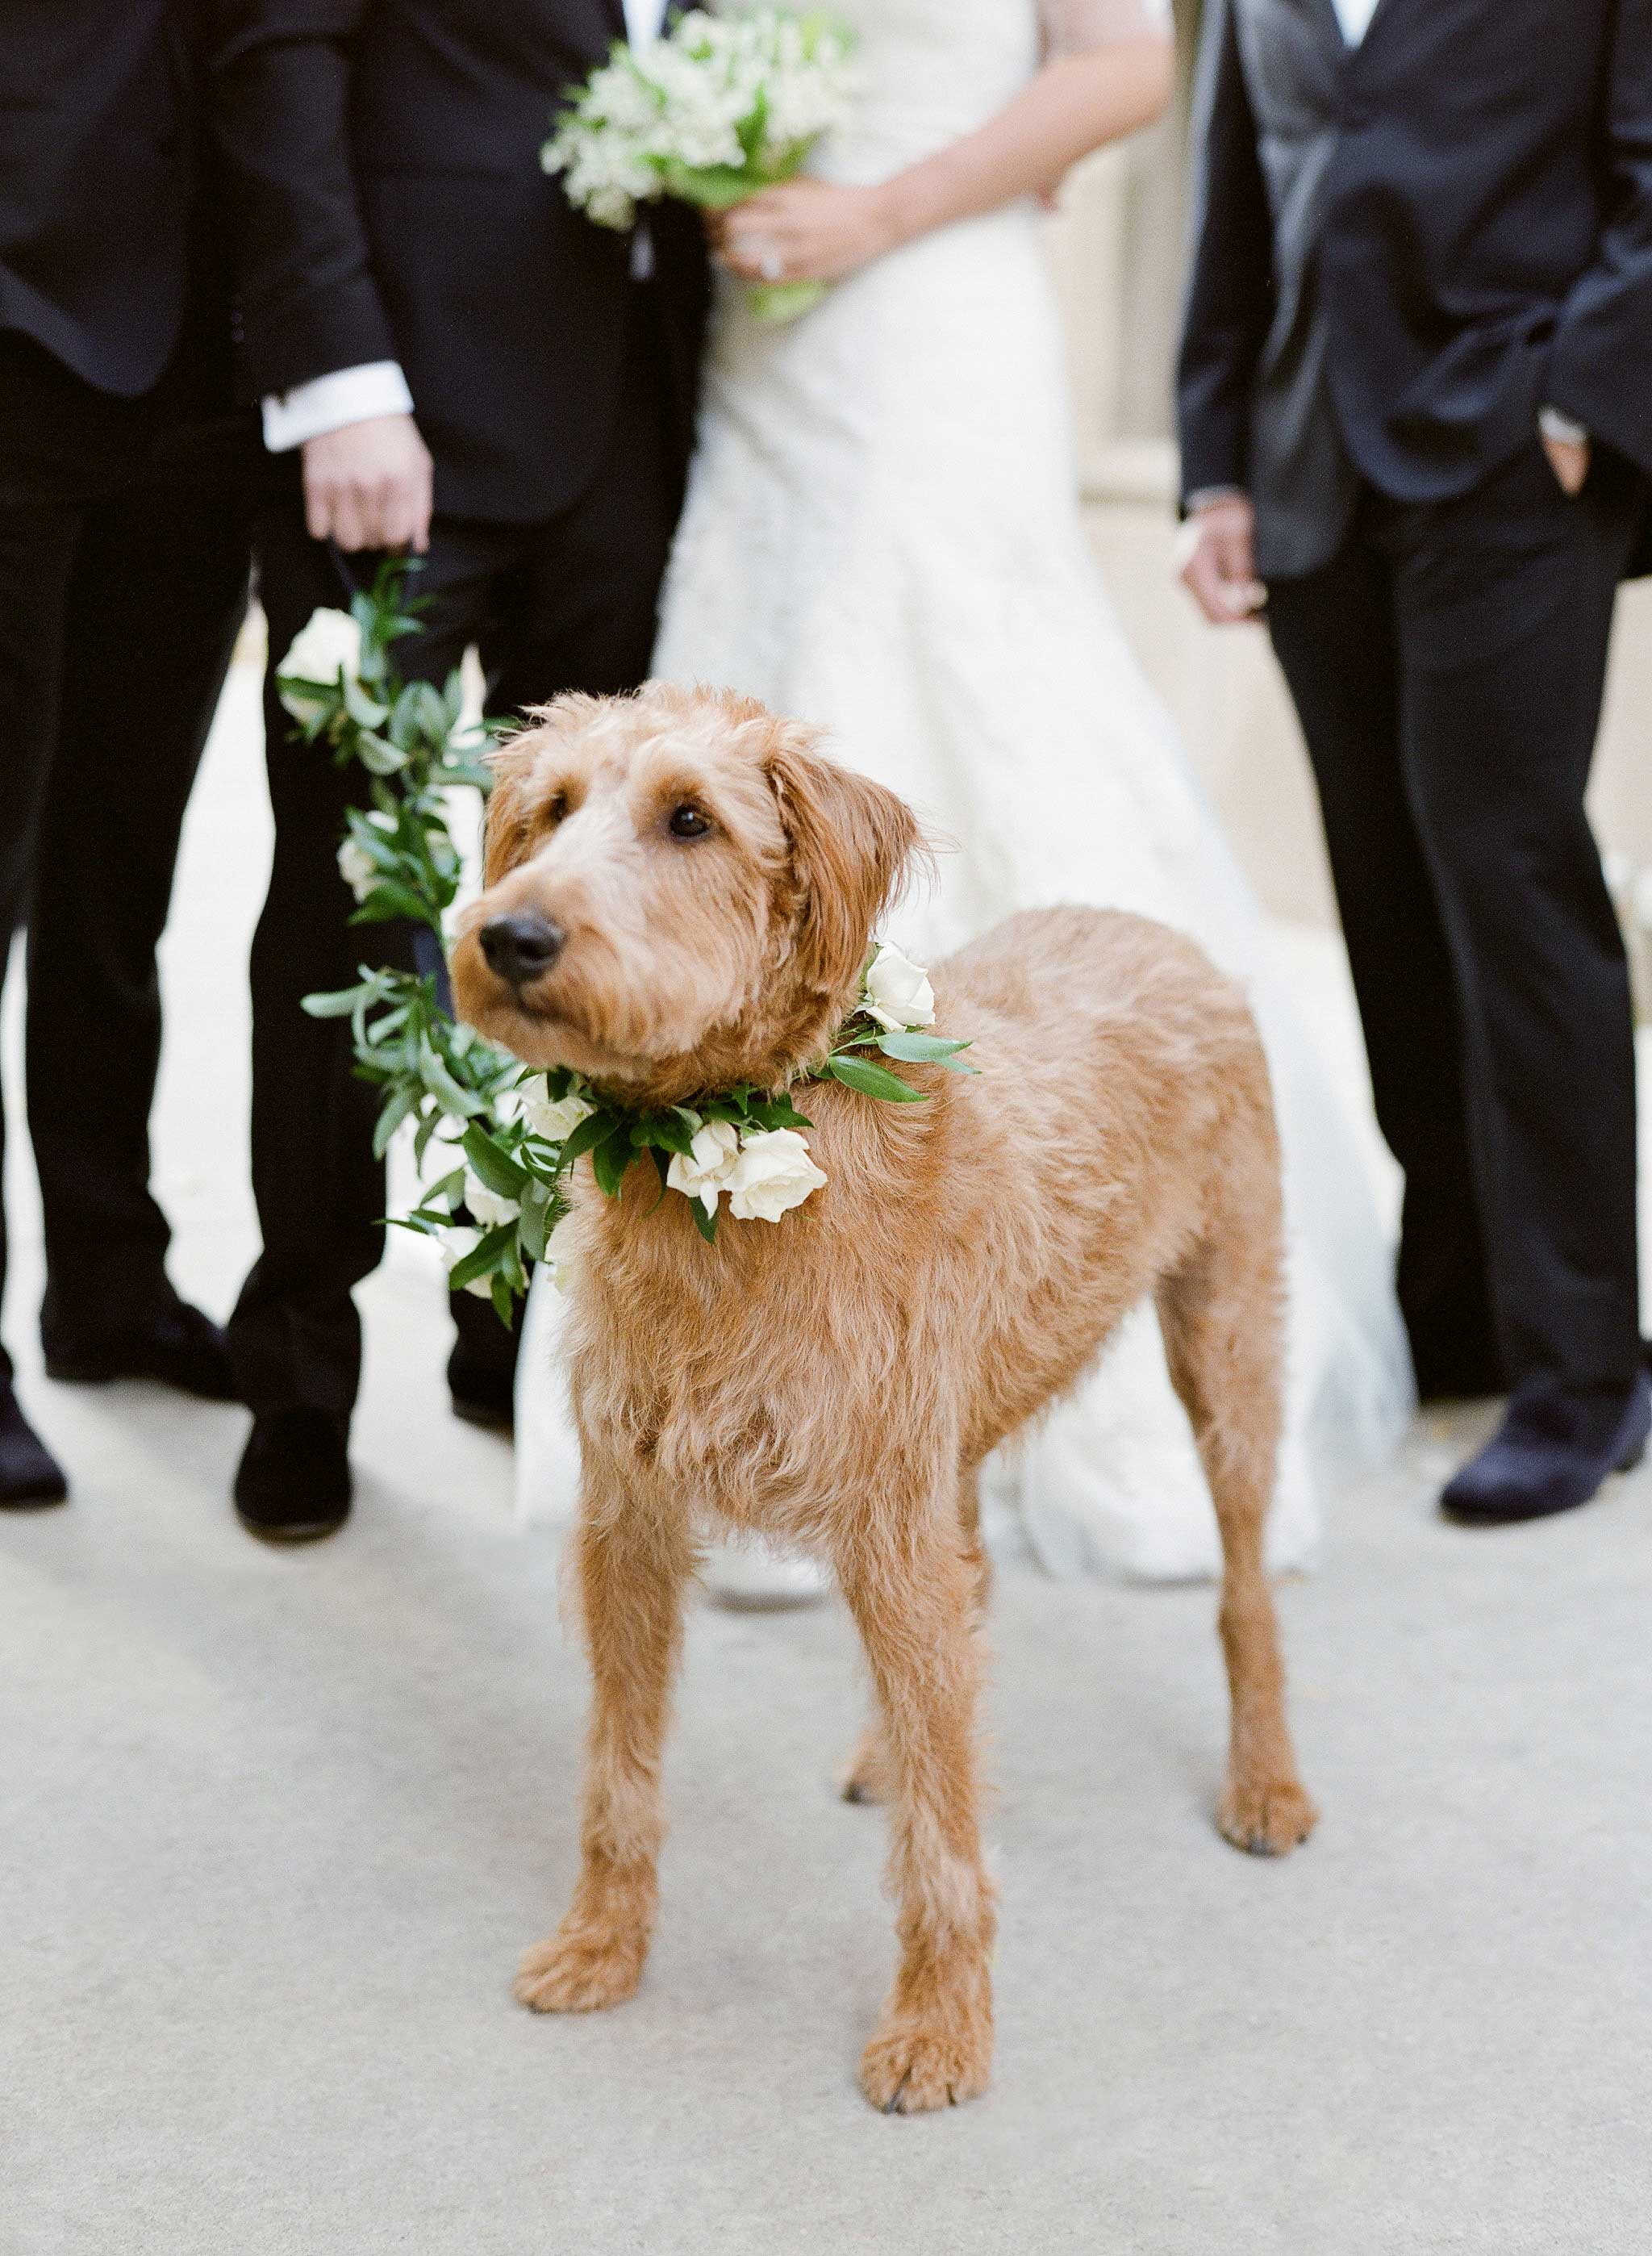 Golden doodle shaved dog with flower collar at wedding